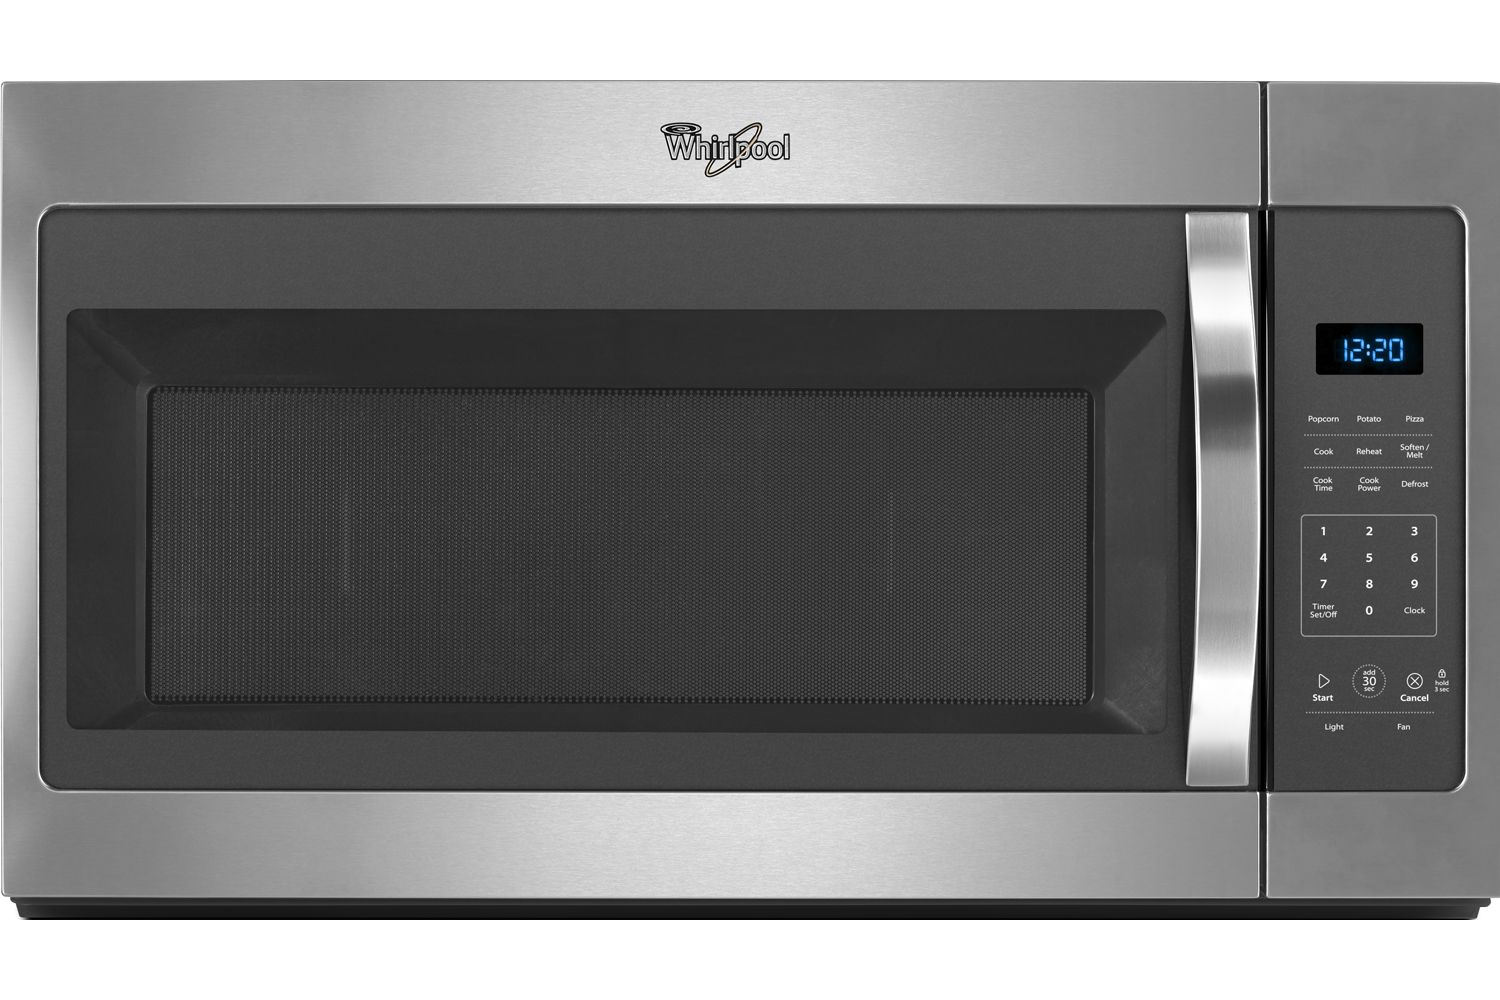 Whirlpool white ice otr microwave - Whirlpool Stainless Steel Over The Range Microwave Hood Combination Wmh31017fs